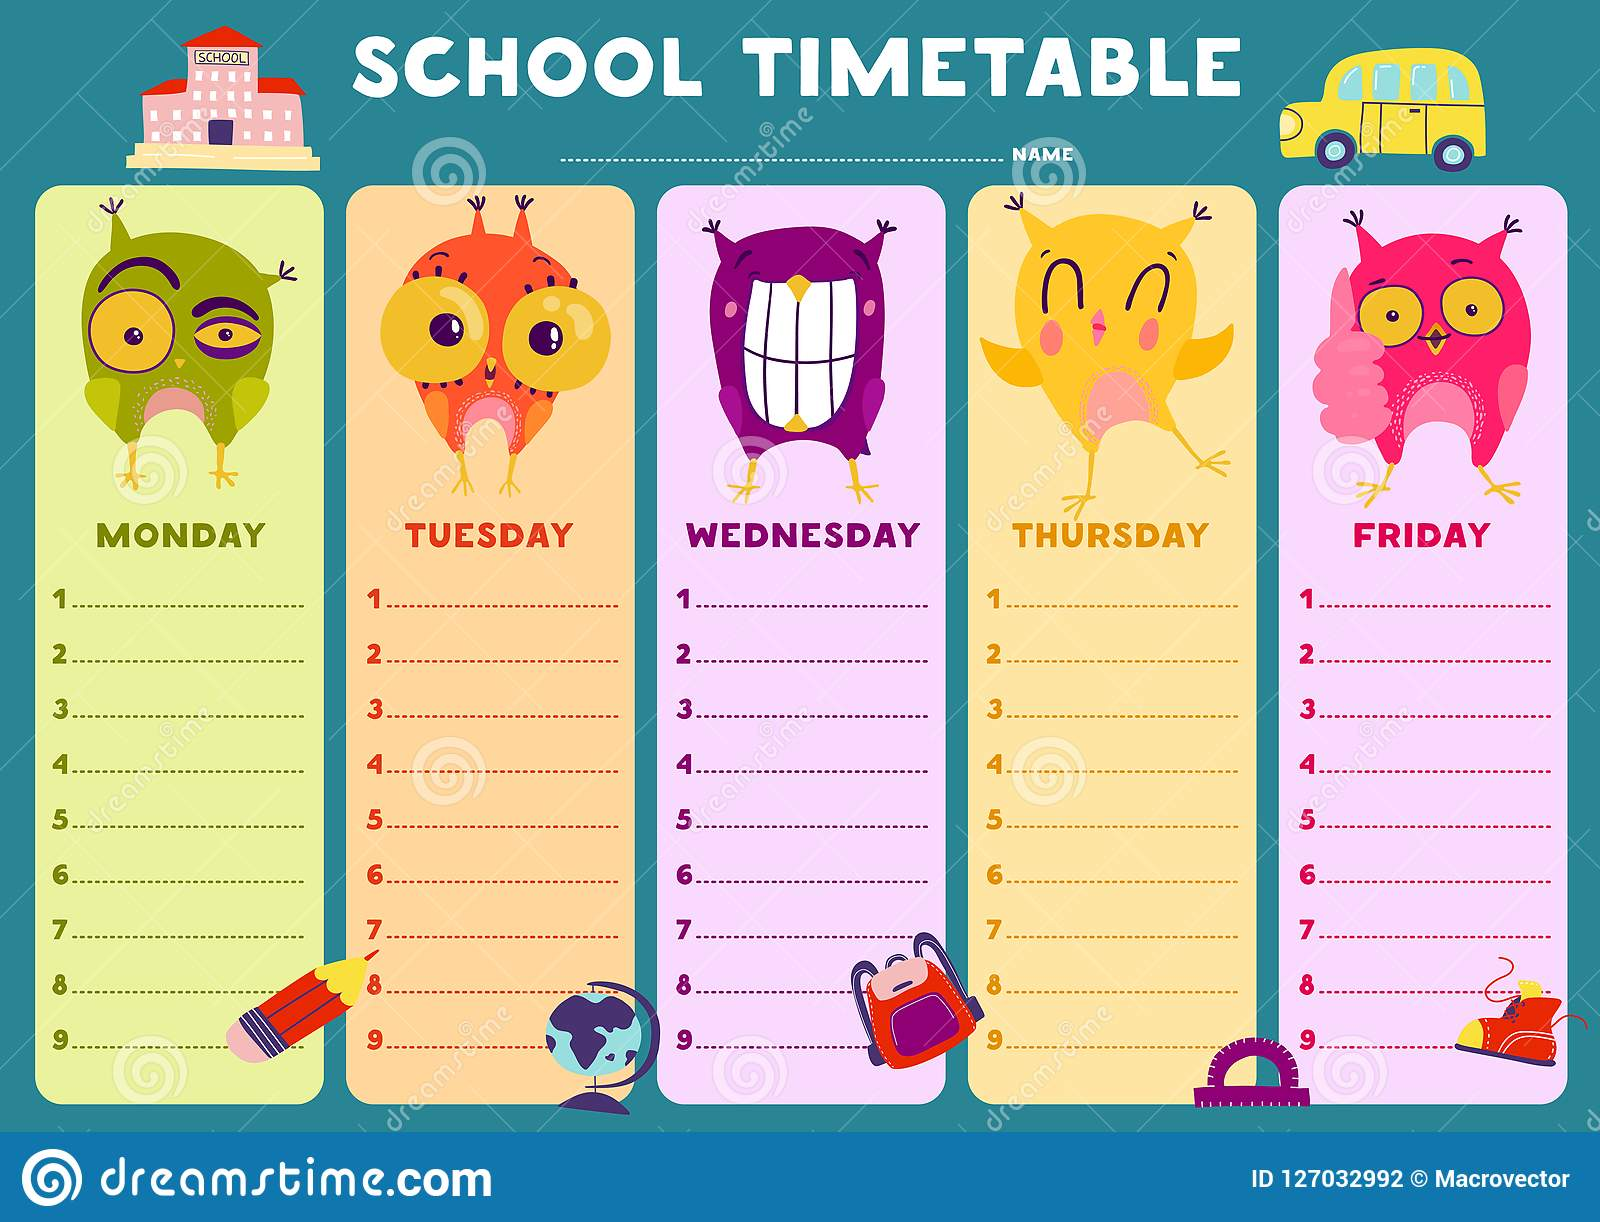 Timetable Template | Owl Timetable Template Vektor Abbildung Illustration Von Pupille